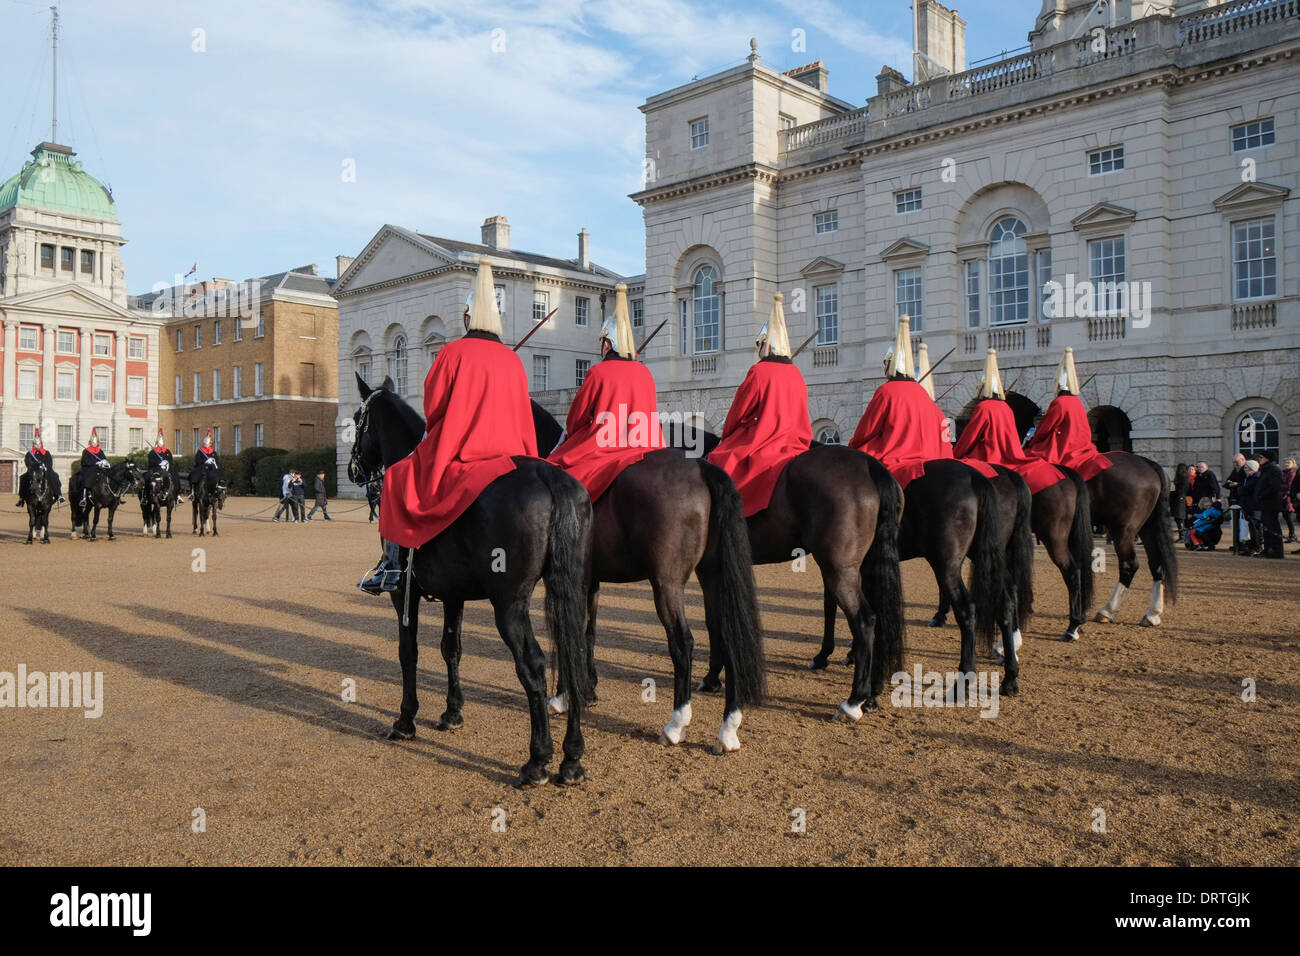 Lifeguards cavalry regiment at changing of the guard ceremony Horse Guards Parade London UK Stock Photo